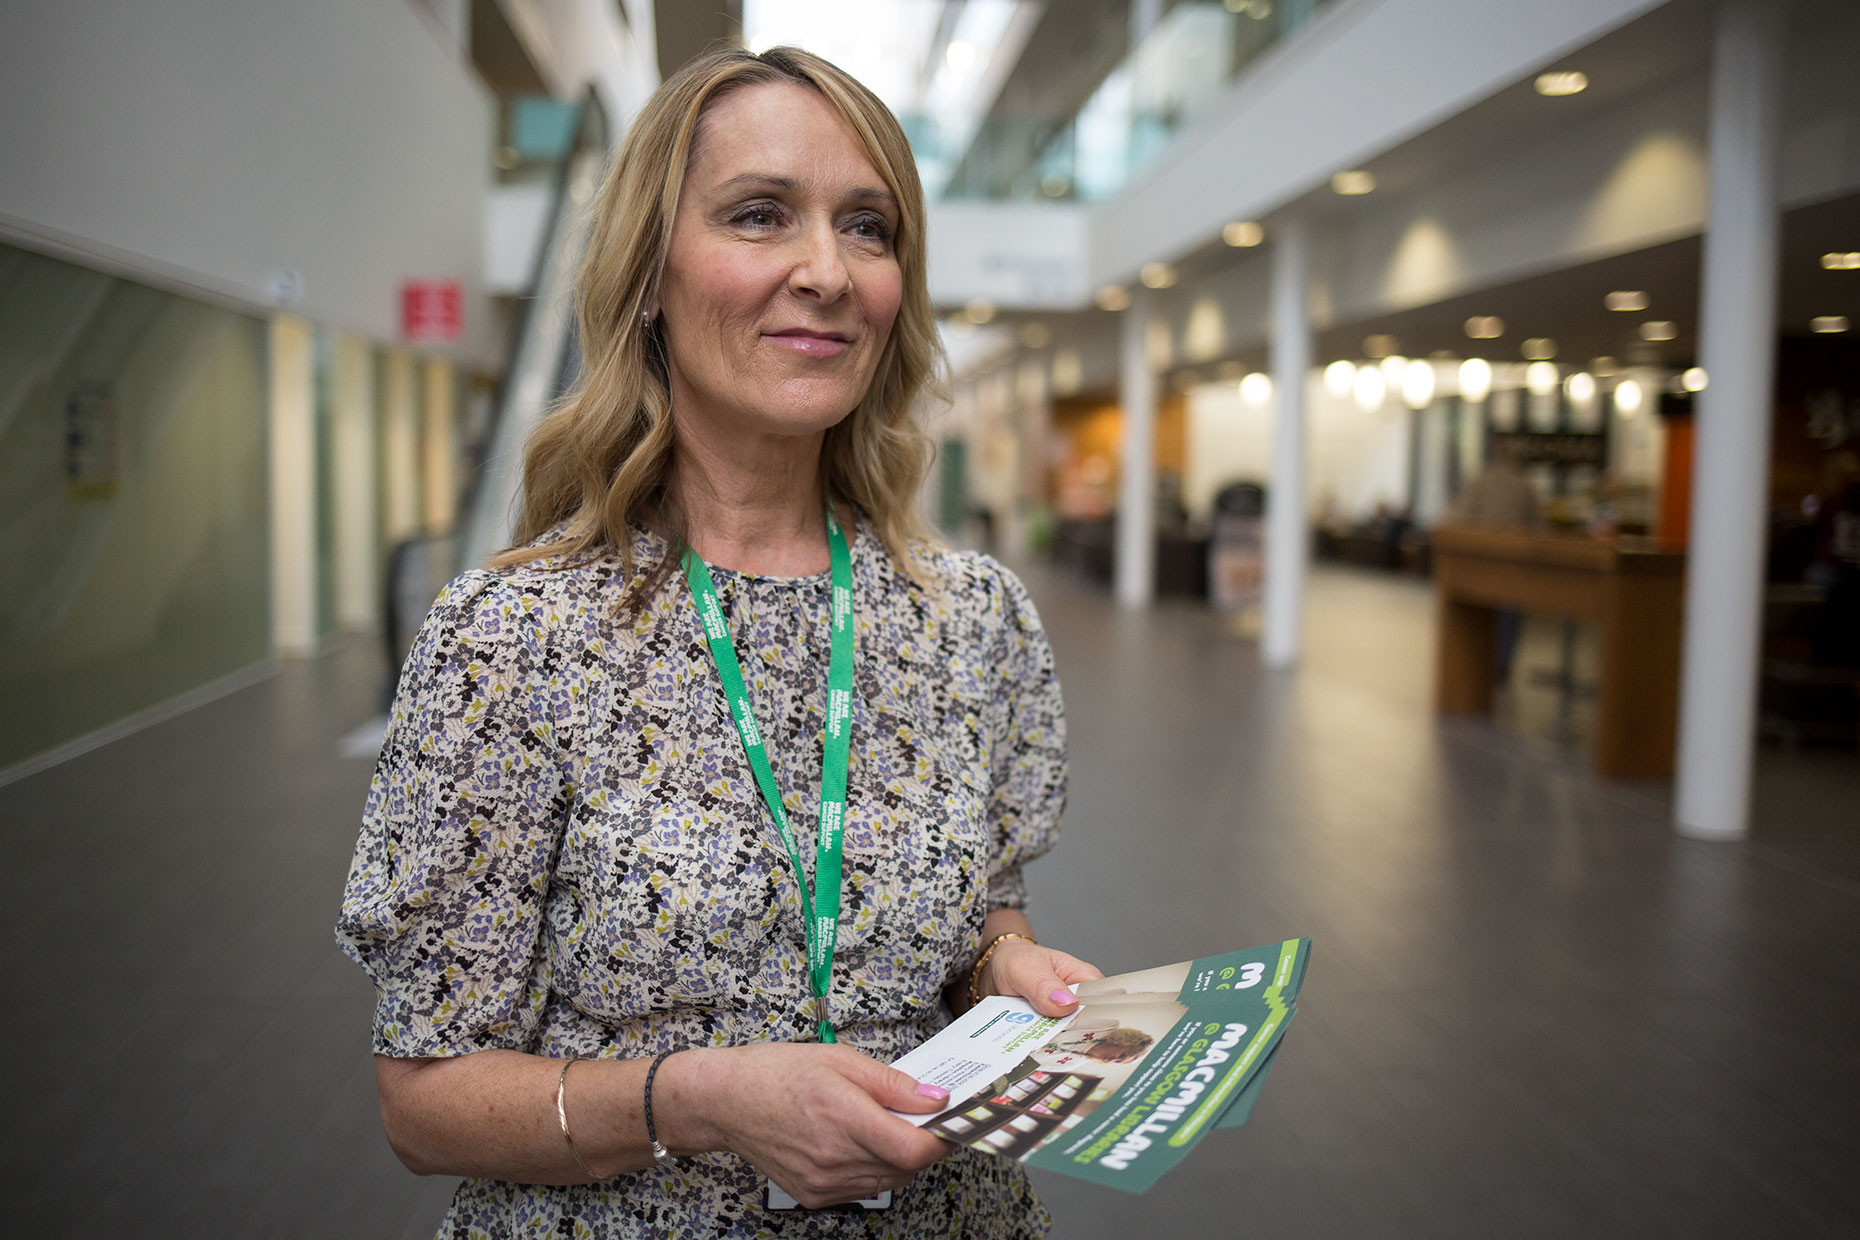 Macmillan cancer volunteer, by Scotland corporate photographer J. Sutton-Hibbert